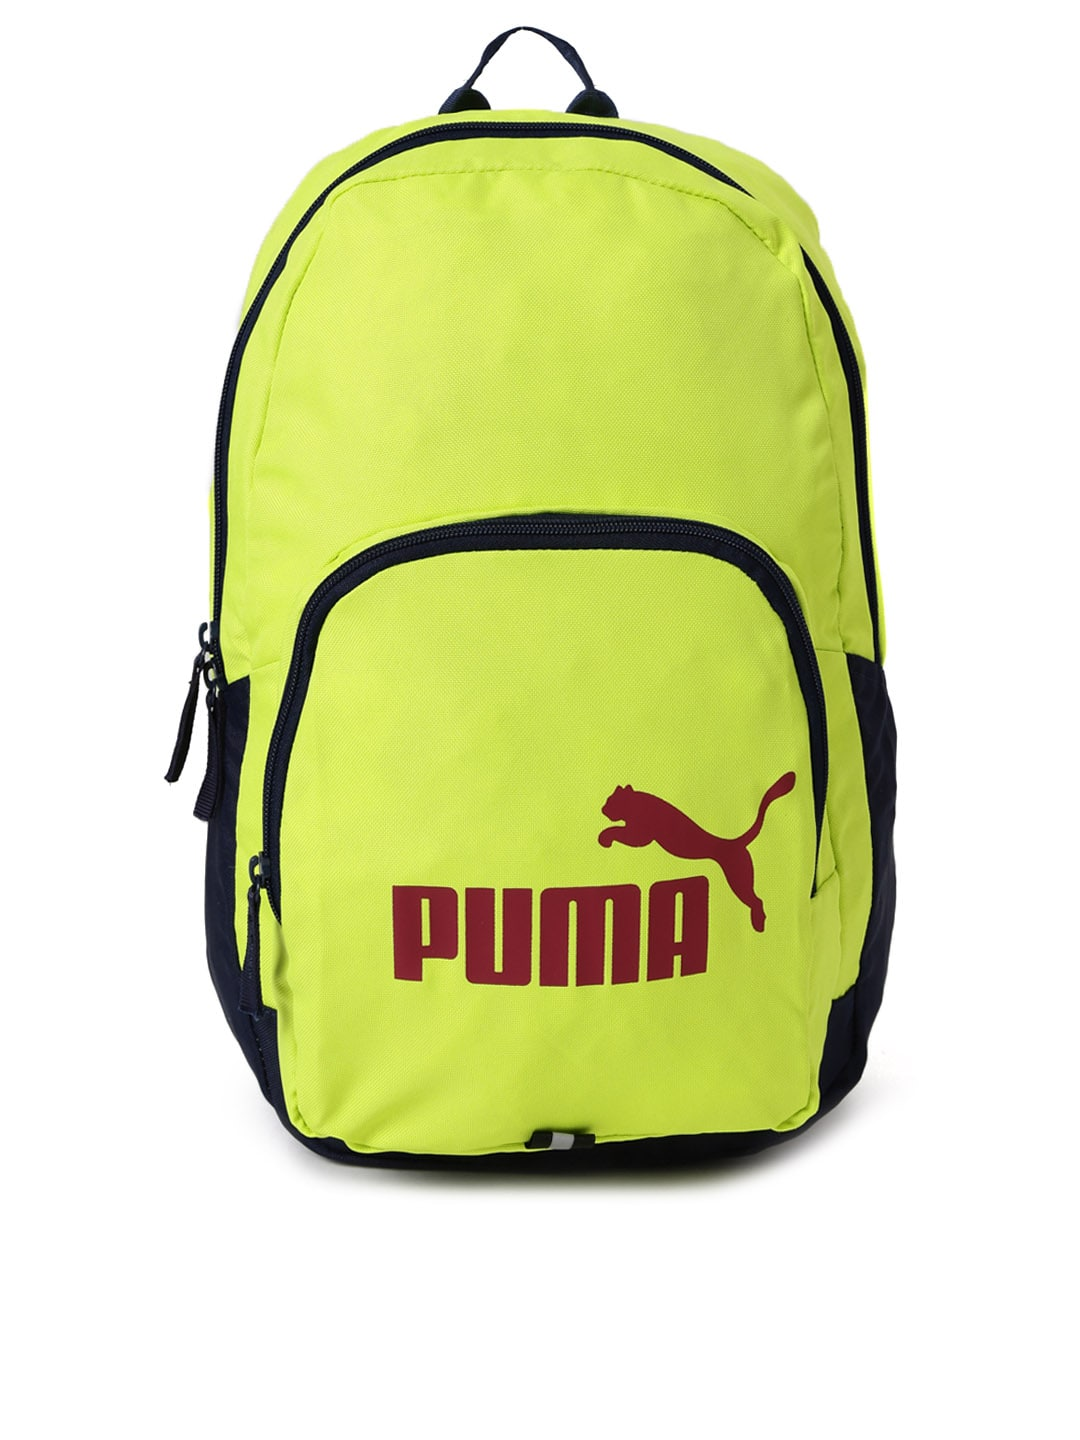 5773d1bf2 Puma 7358911 Unisex Green And Navy Phase Backpack - Best Price ...